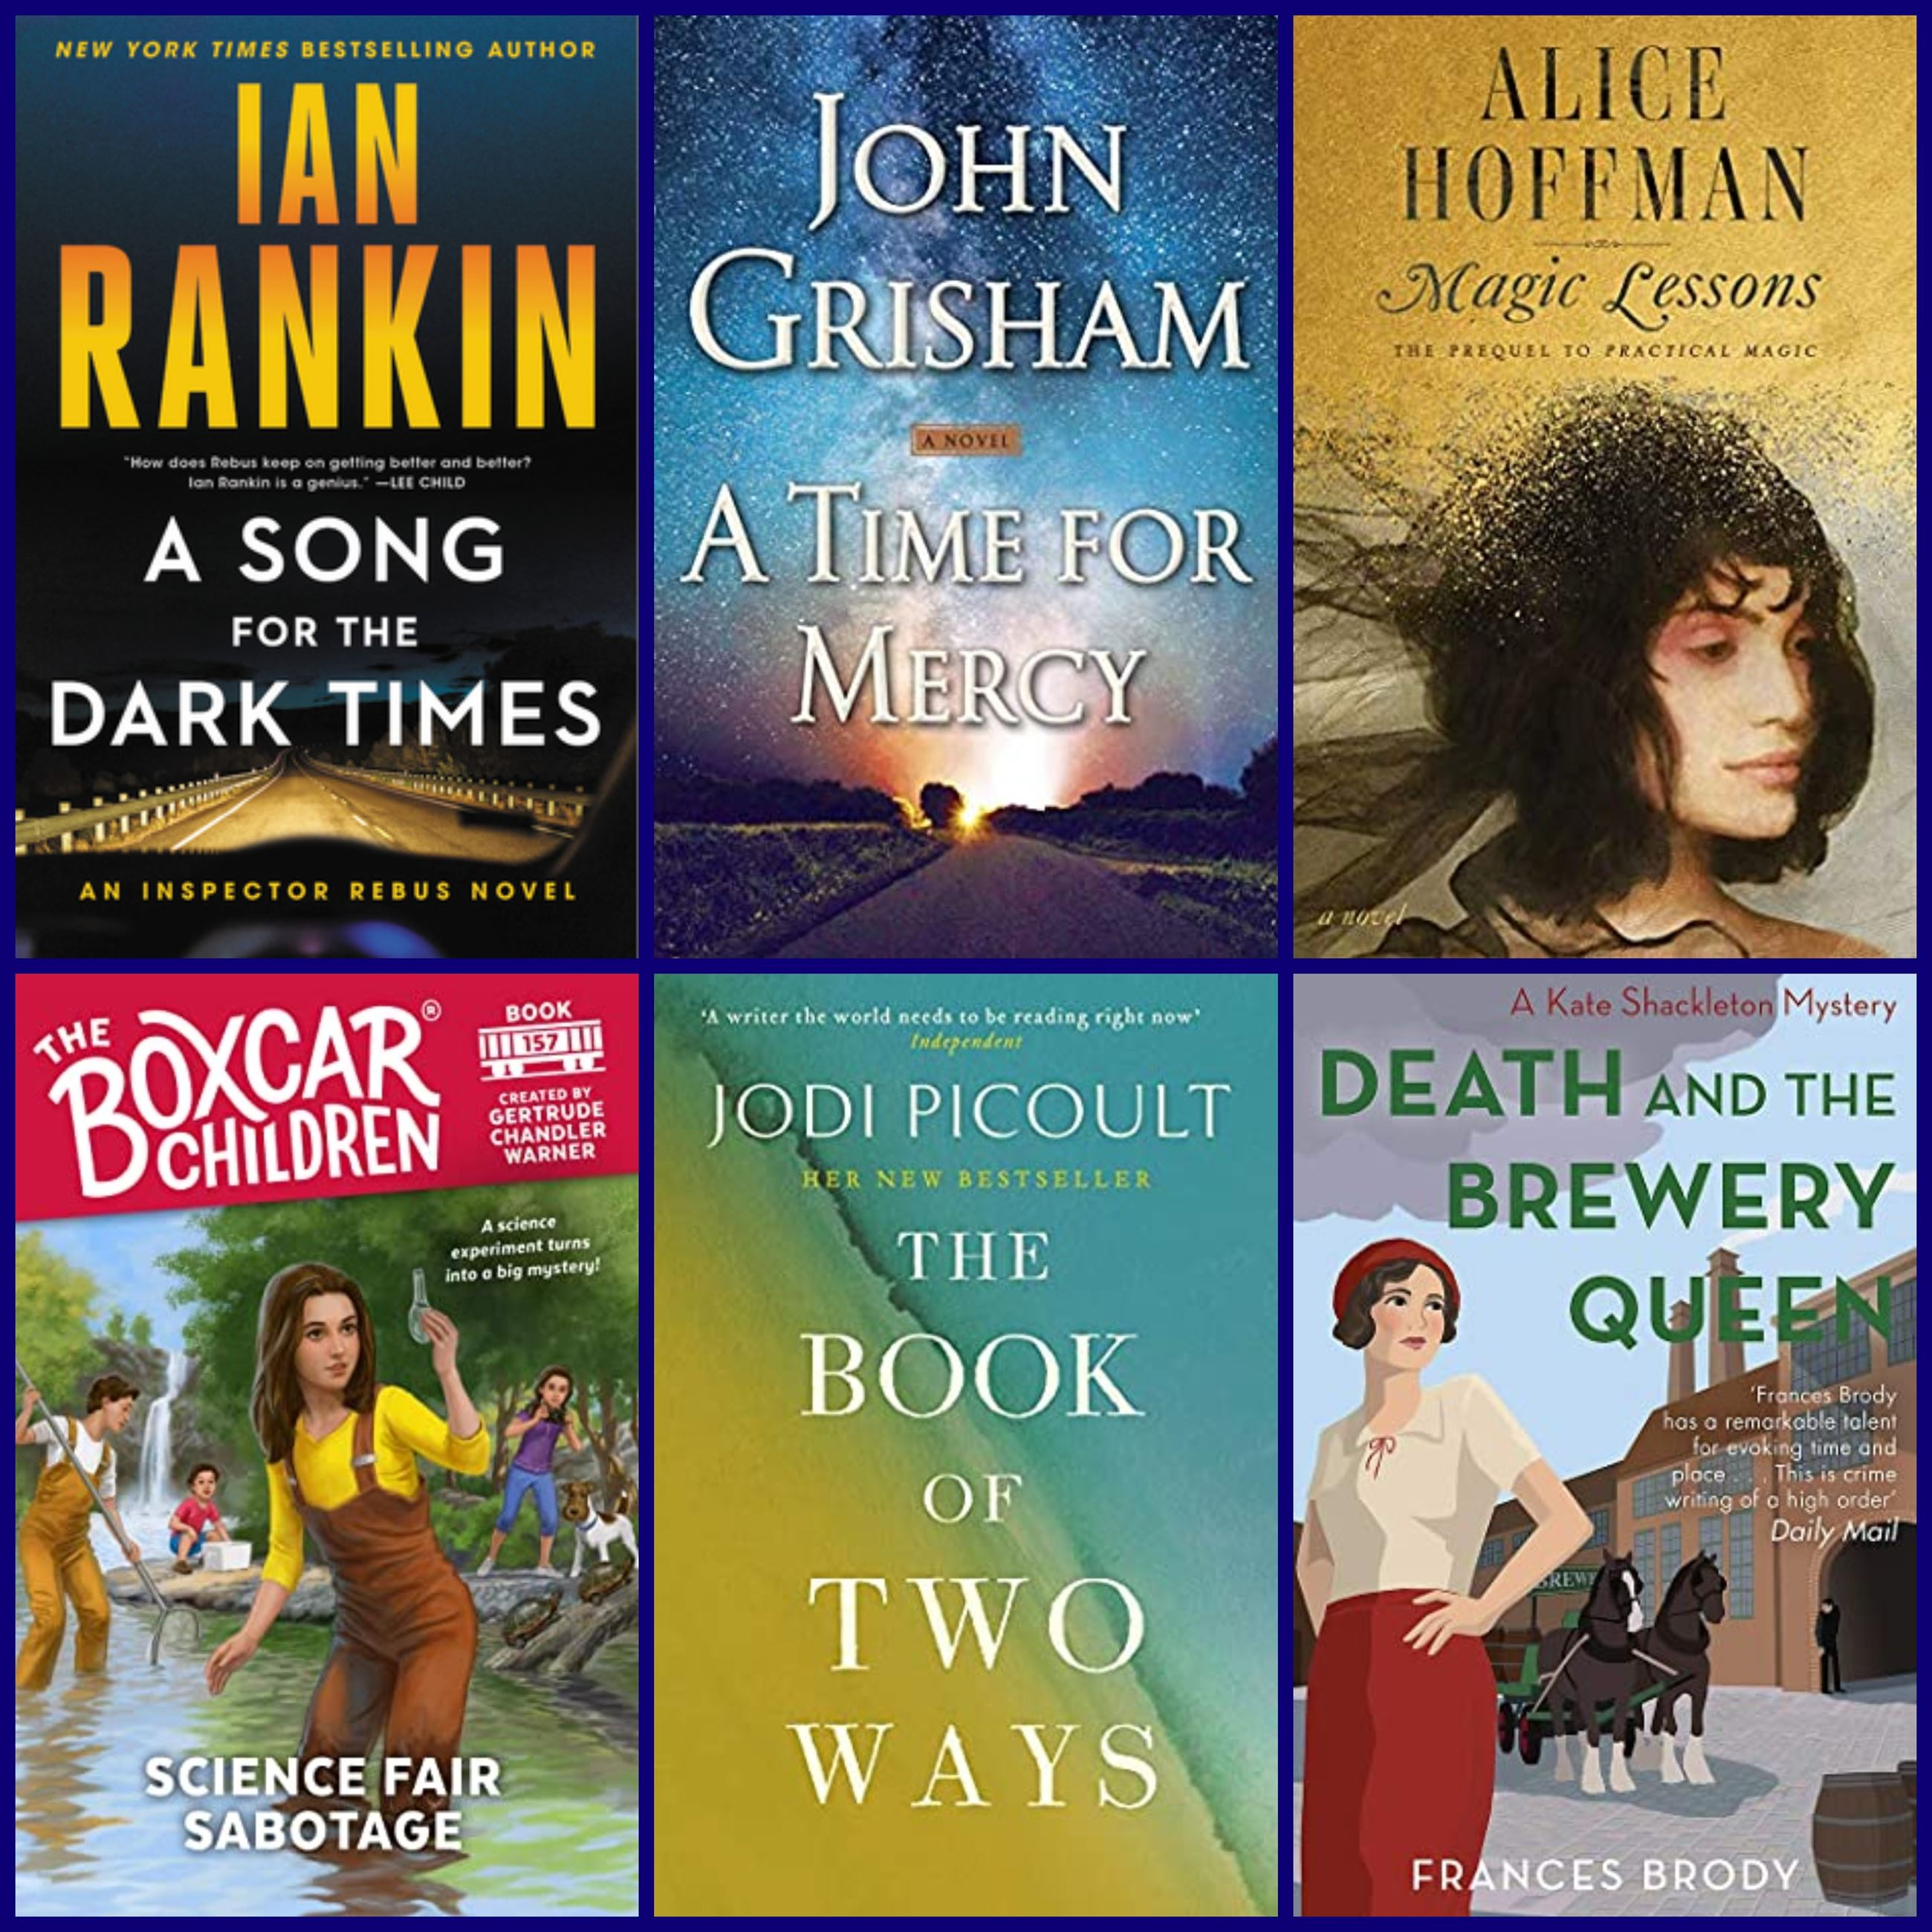 NewReleasesCollage 6 BookCovers